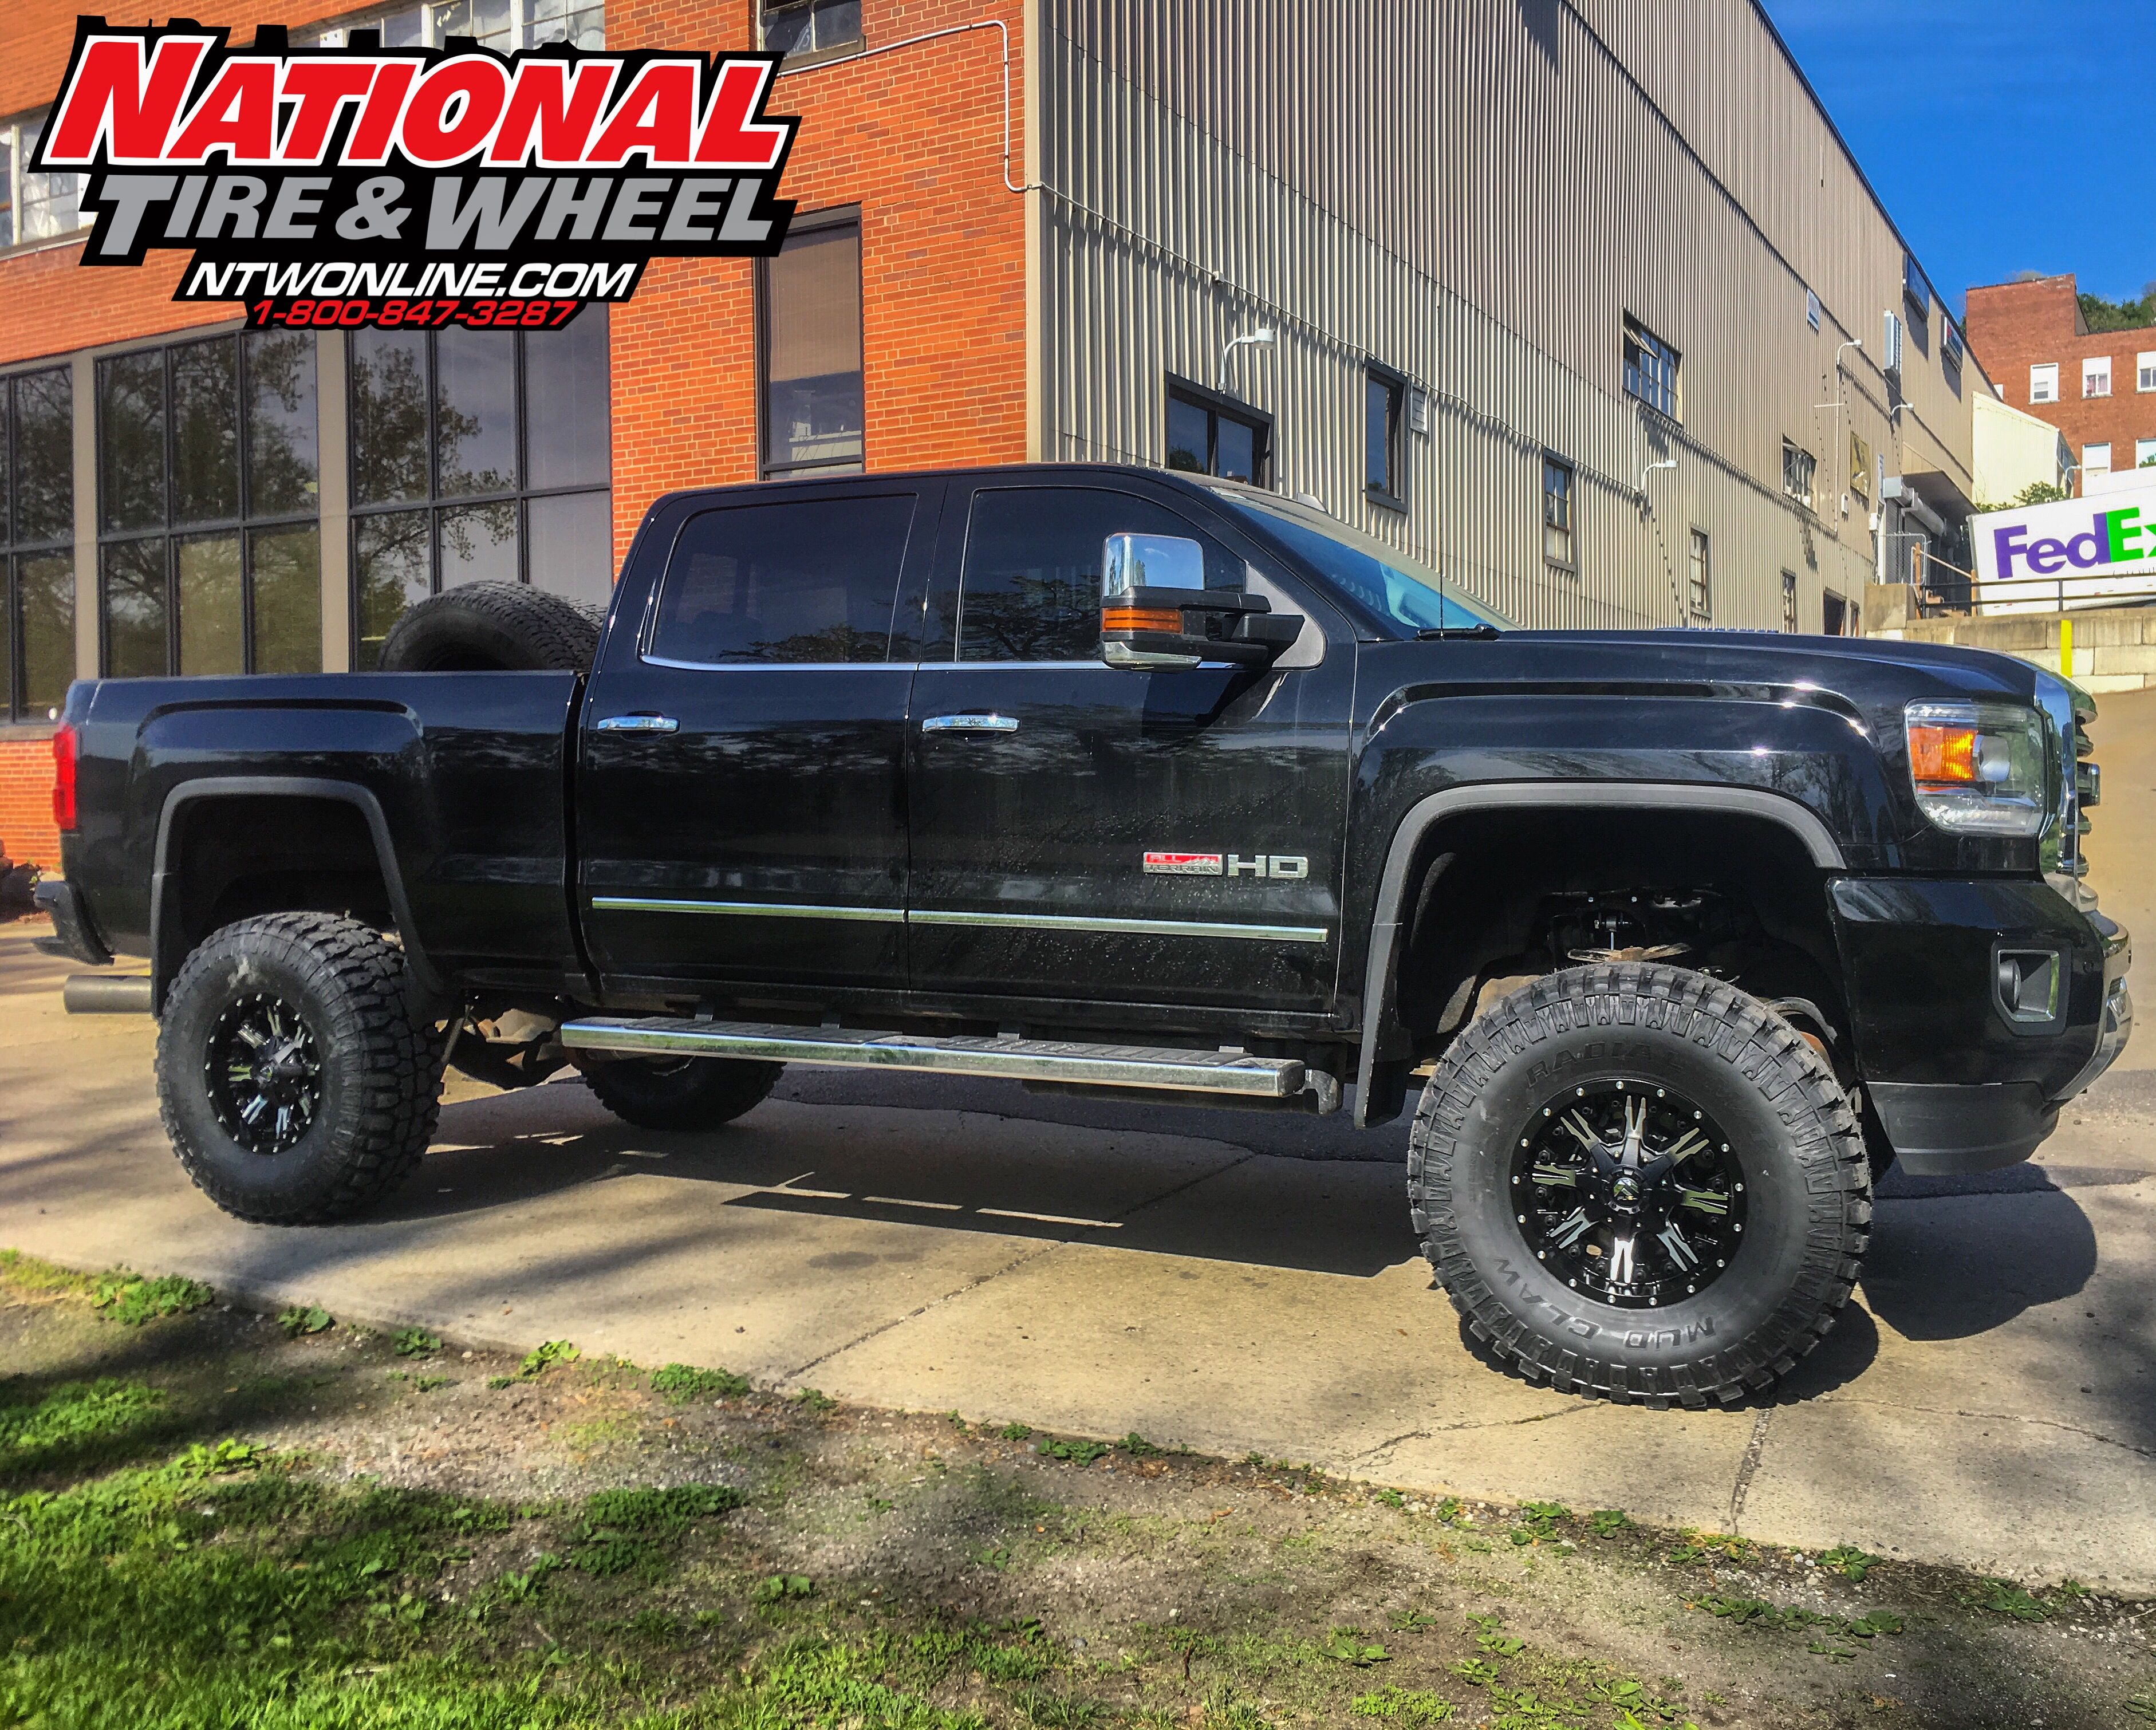 Ntw install this 2016 gmc received a rough country suspension system fuel off road nutz wheels and a set of radial mud claw m t tires